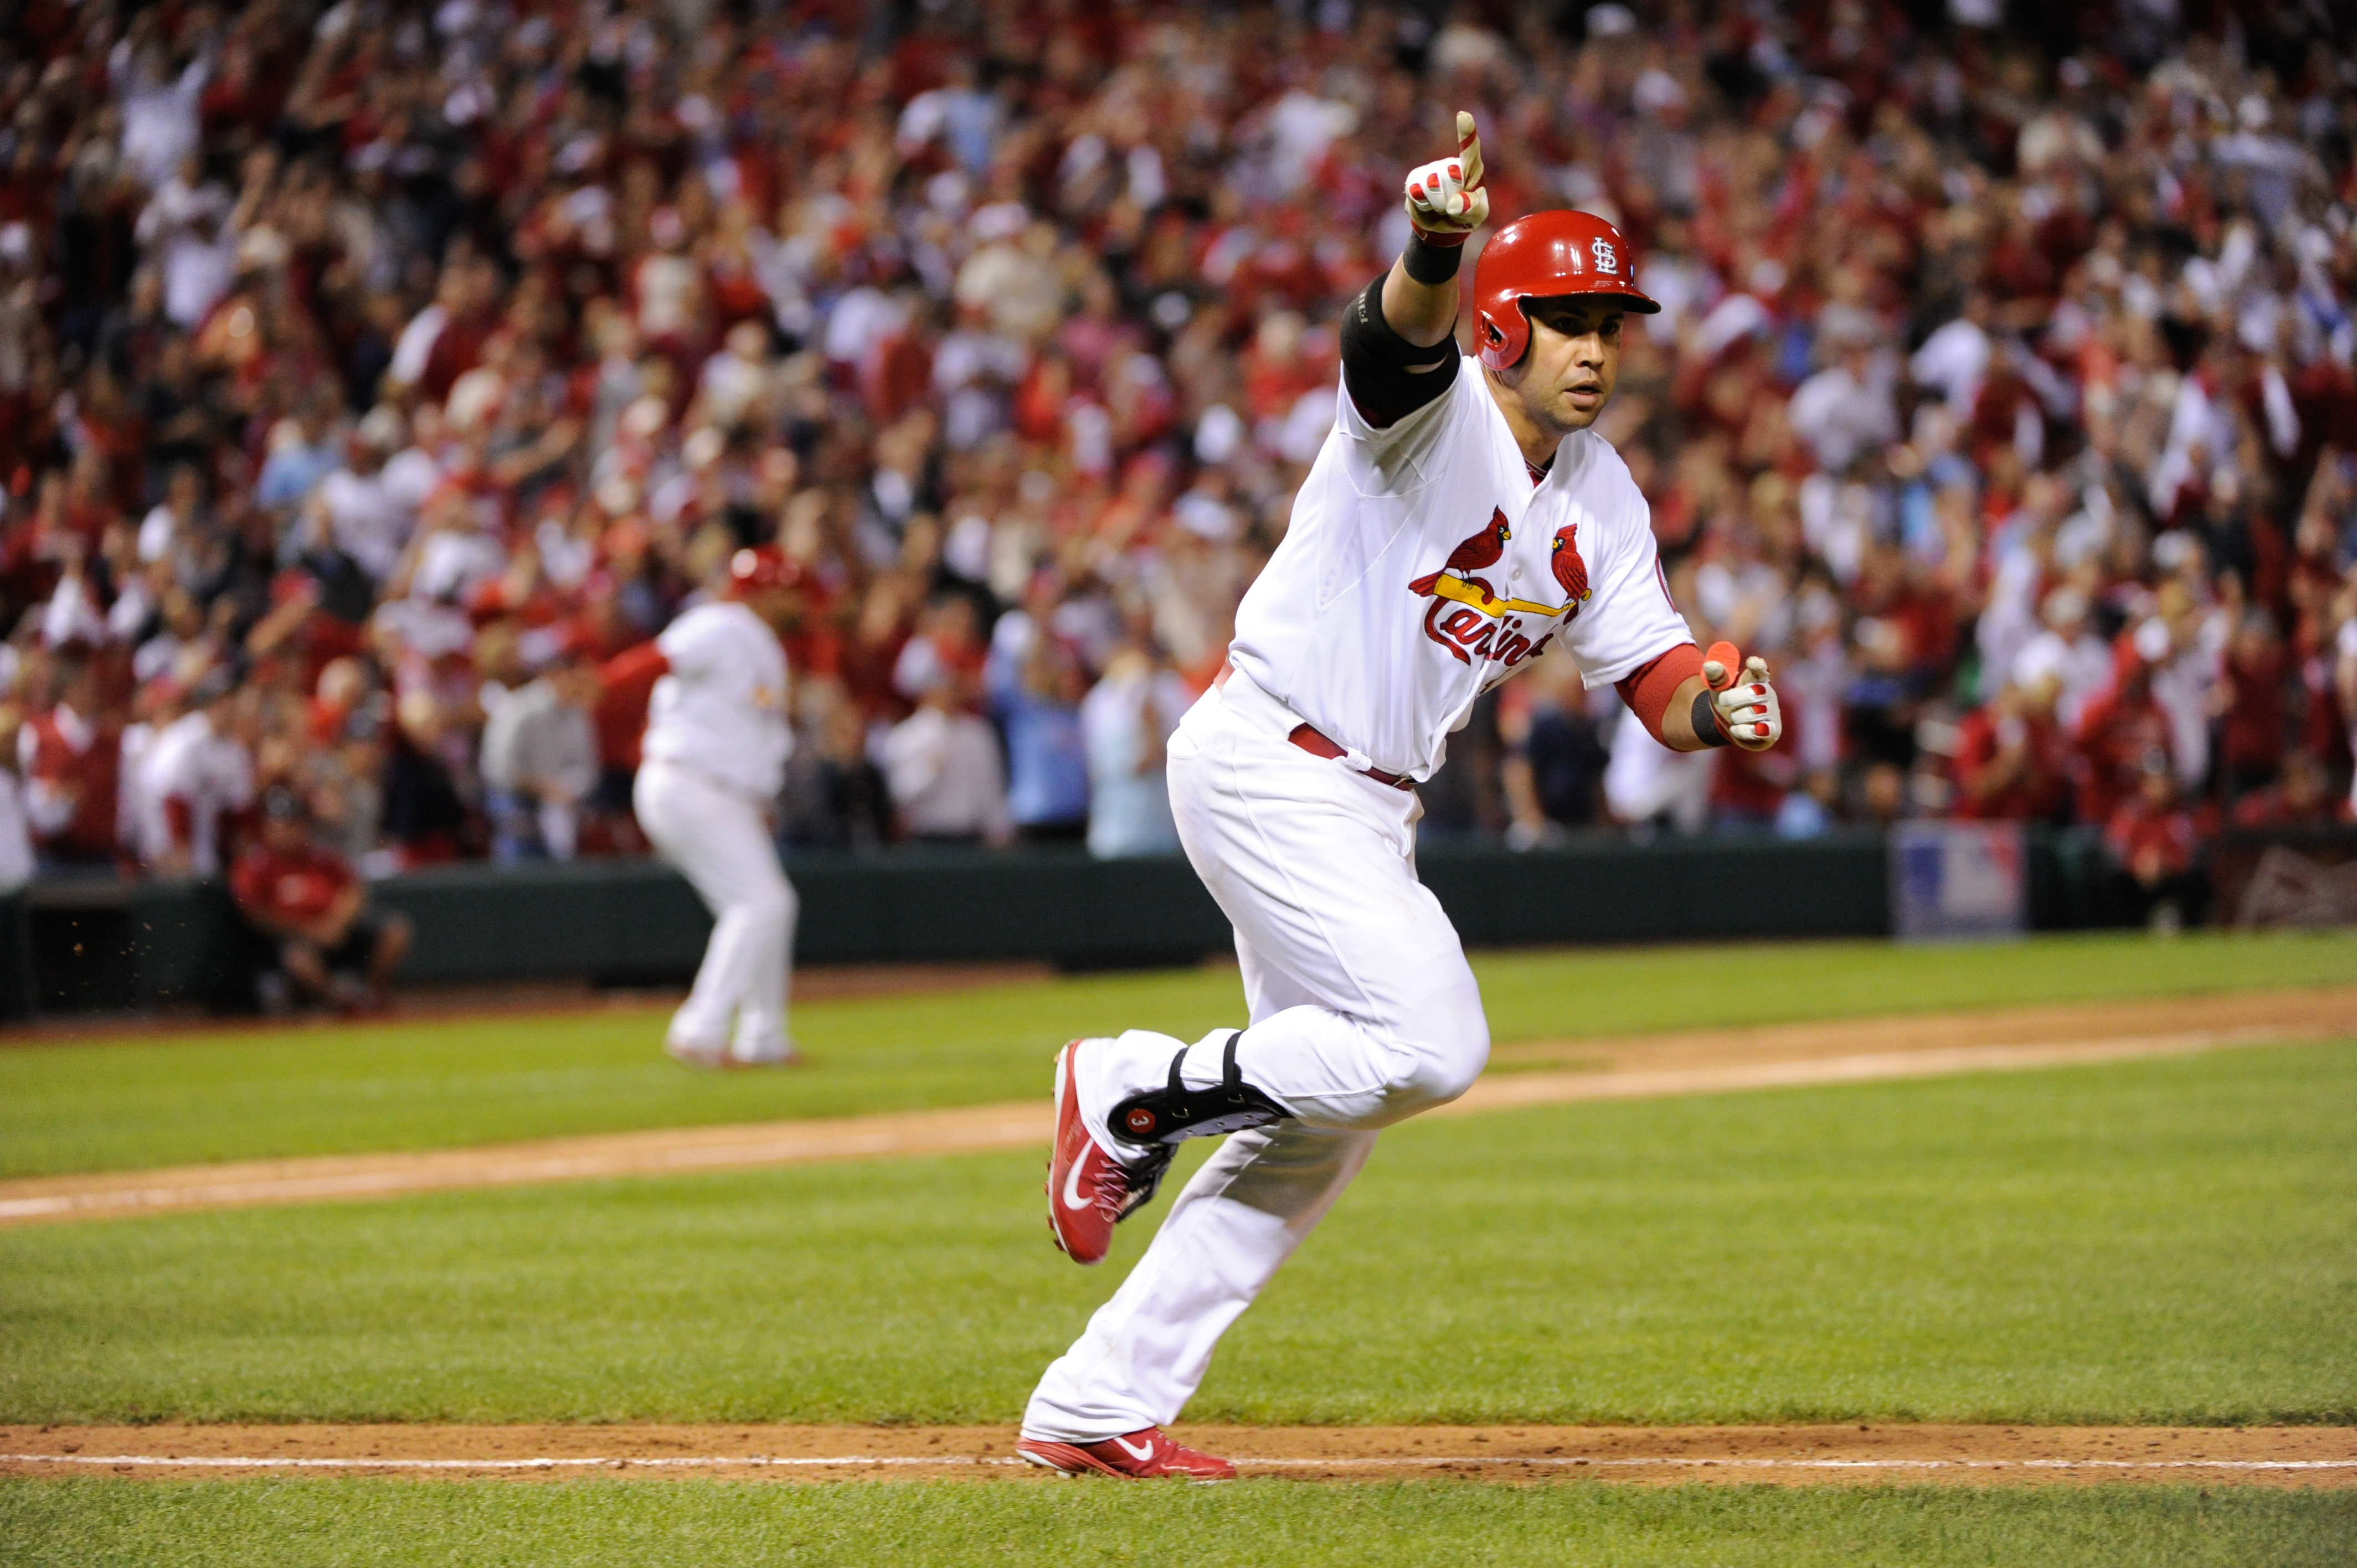 NLCS Game One: Los Angeles Dodgers v. St. Louis Cardinals